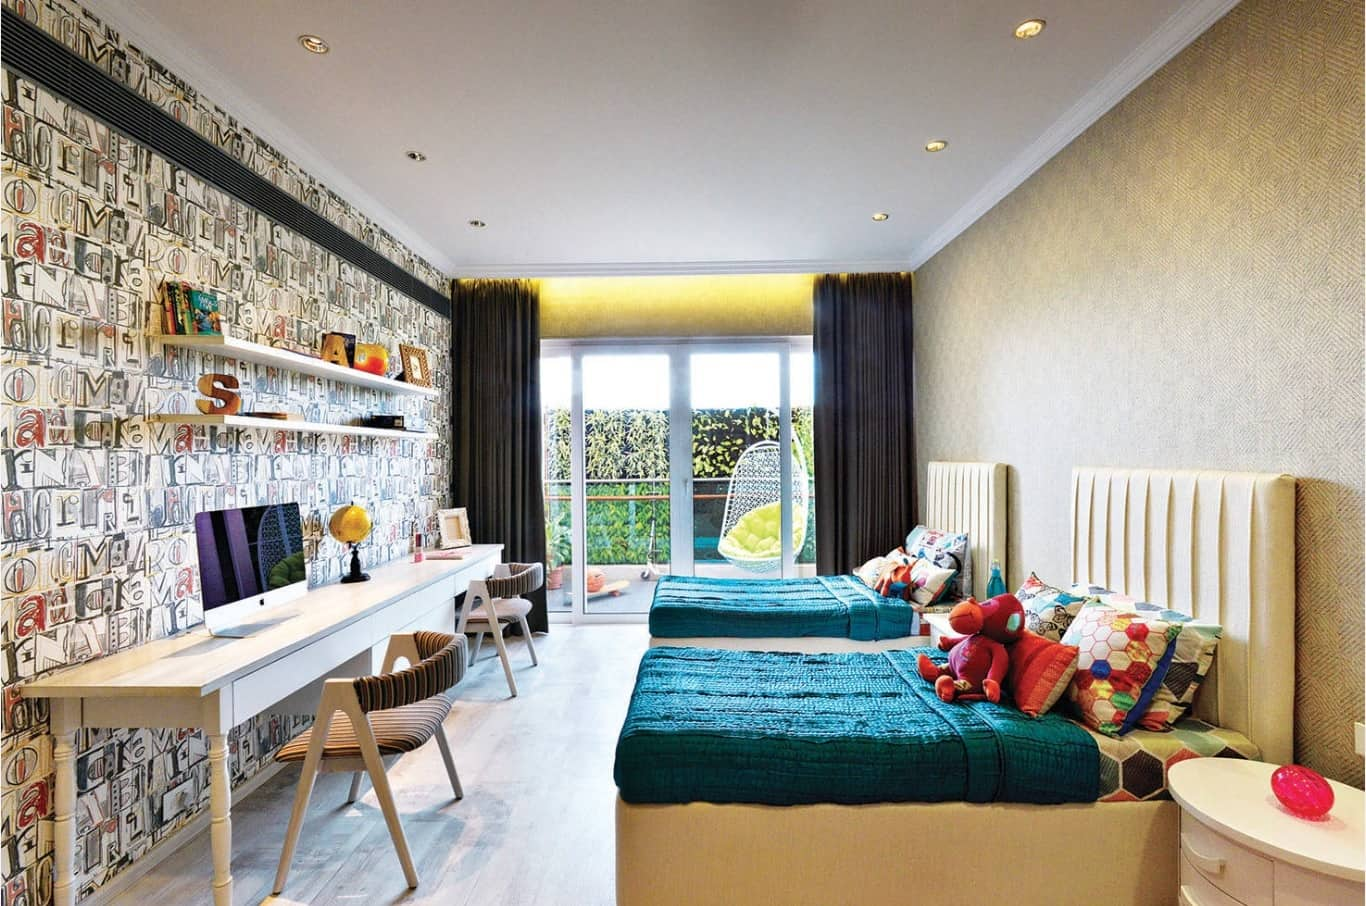 Study Room Design and Finishing Trends with Photos. Casual styled children's room for two with workplaces at the large desk